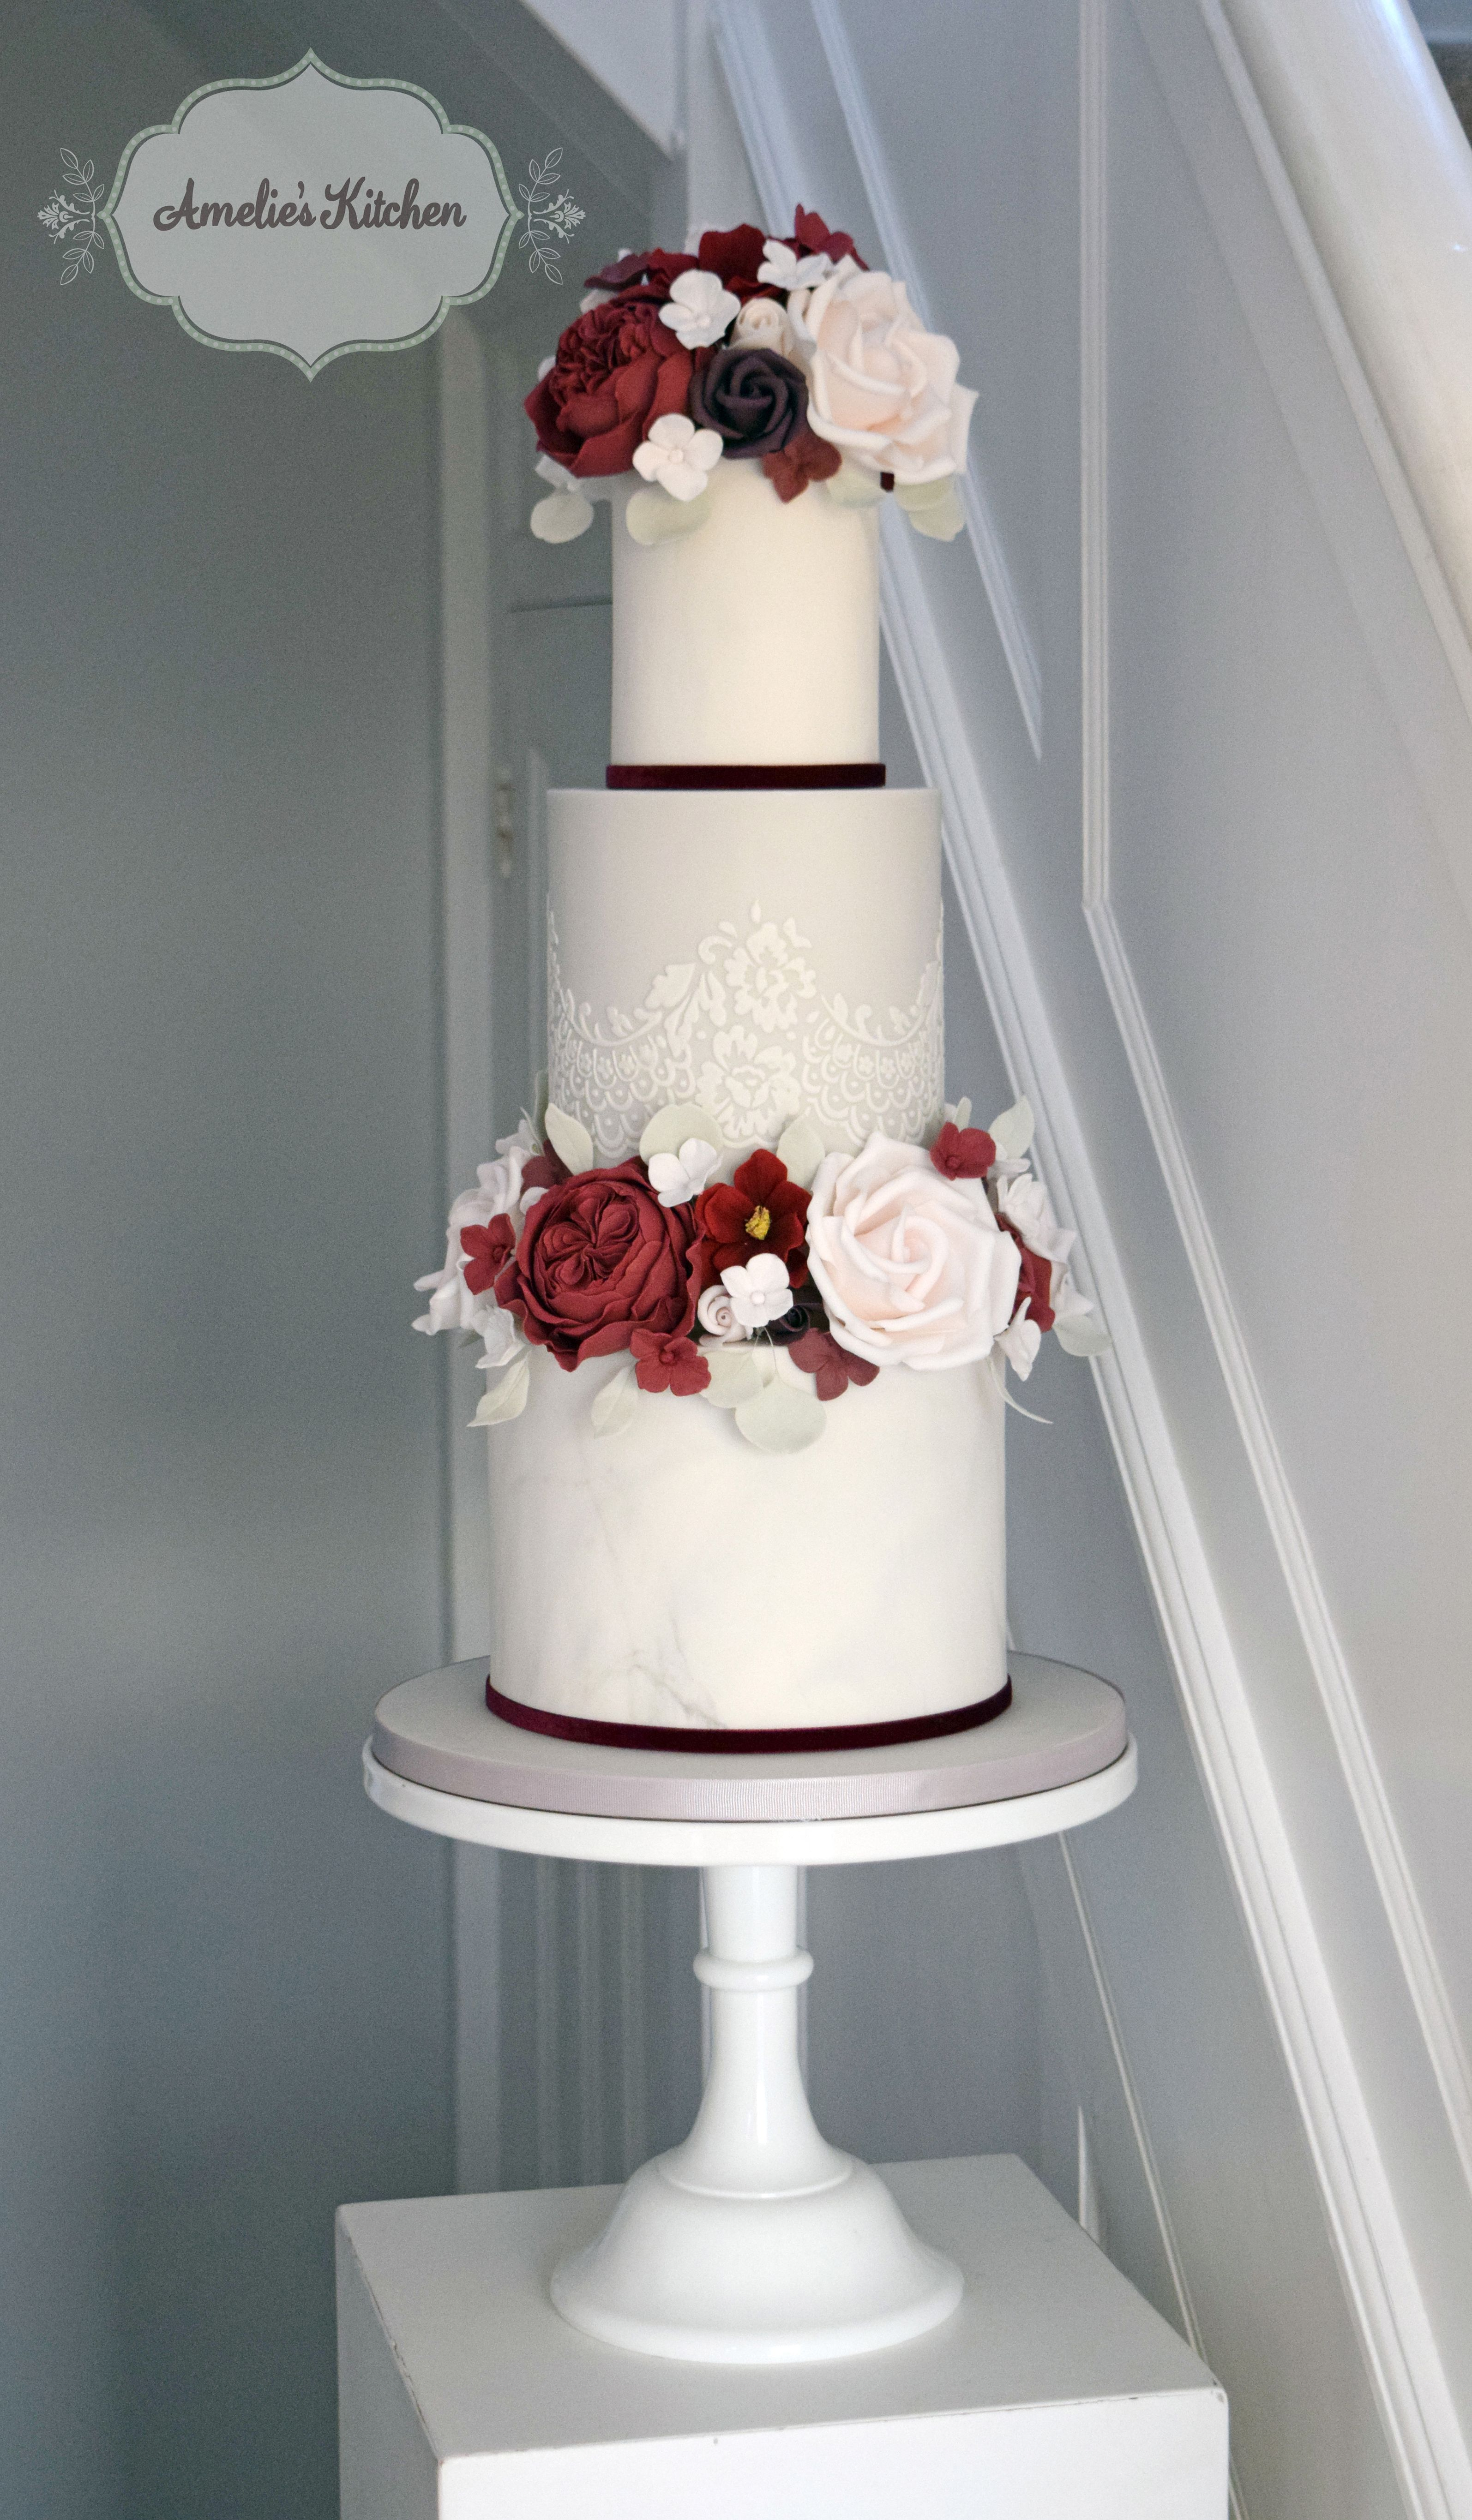 Grey blush and burgundy themed wedding cake design featuring an